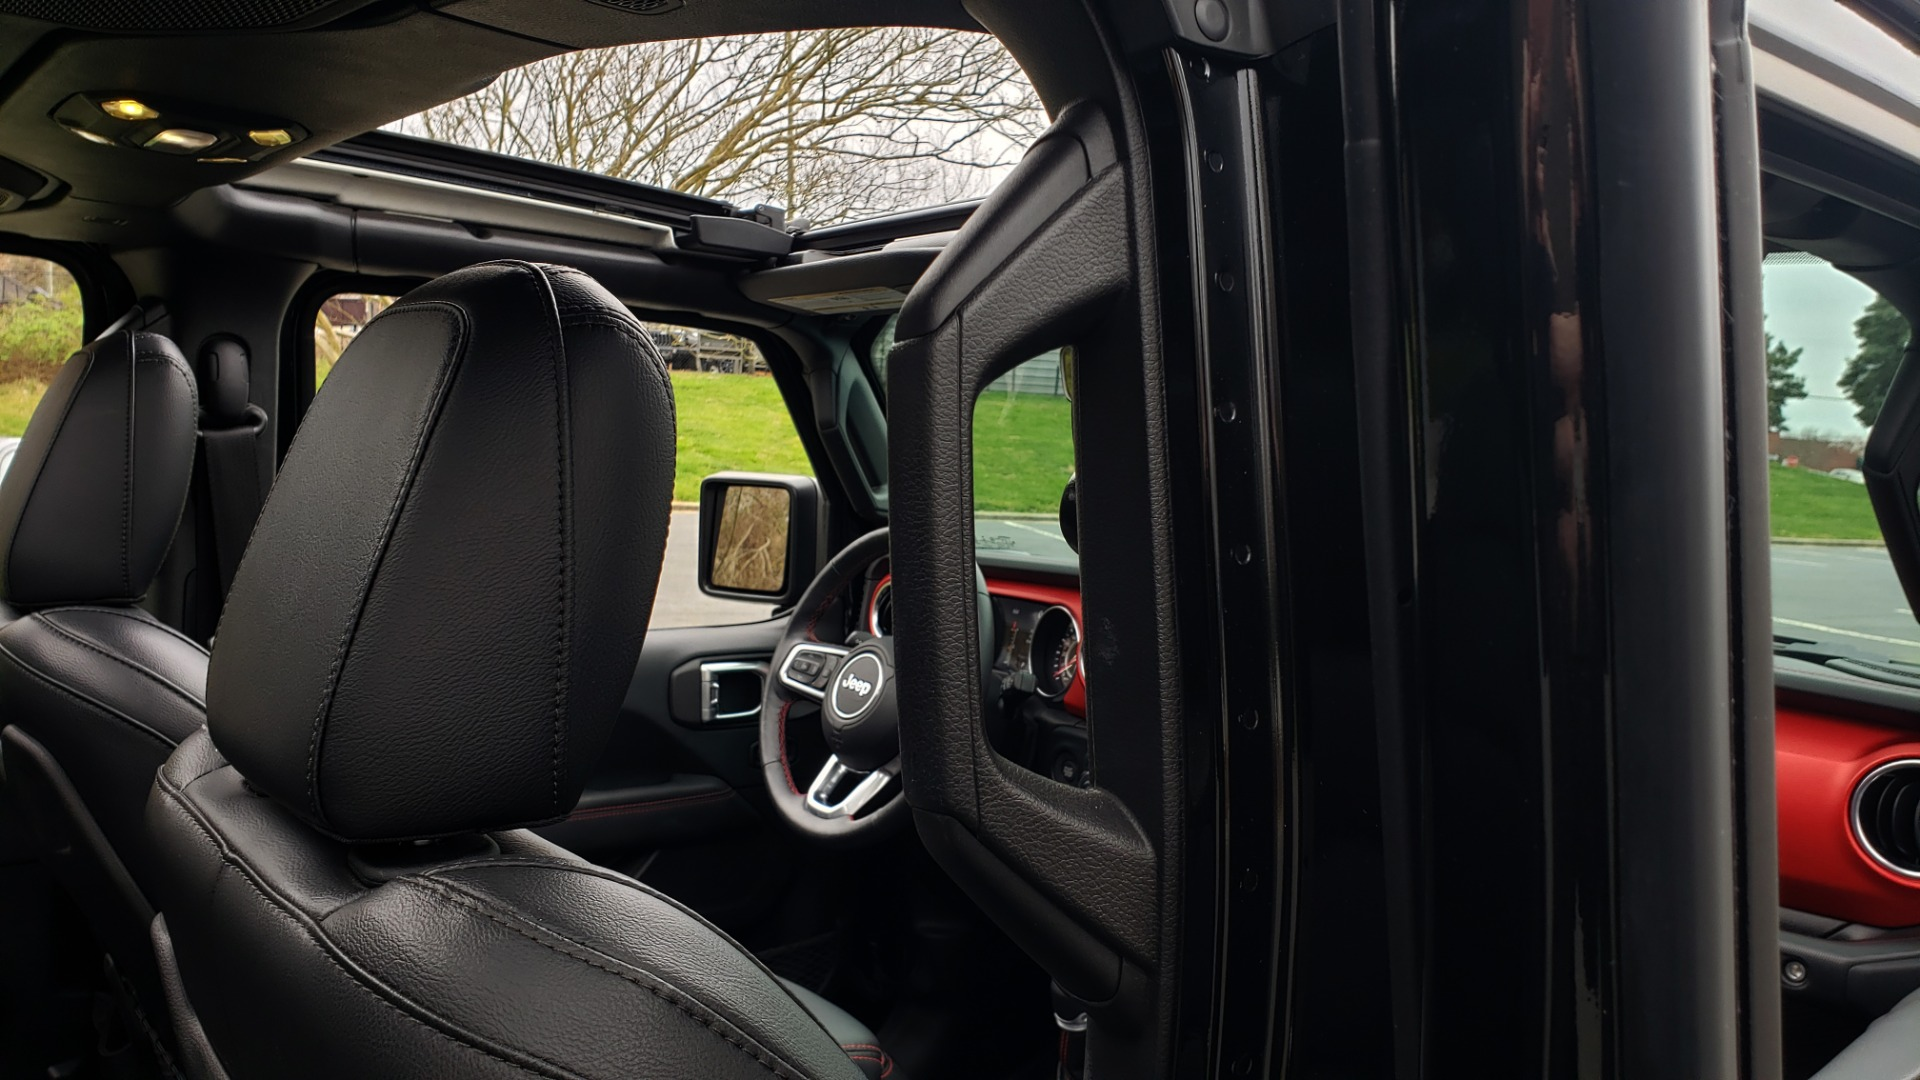 Used 2019 Jeep WRANGLER UNLIMITED RUBICON 4WD / V6 / 8-SPD AUTO / NAV / PWR TOP / REARVIEW for sale Sold at Formula Imports in Charlotte NC 28227 102